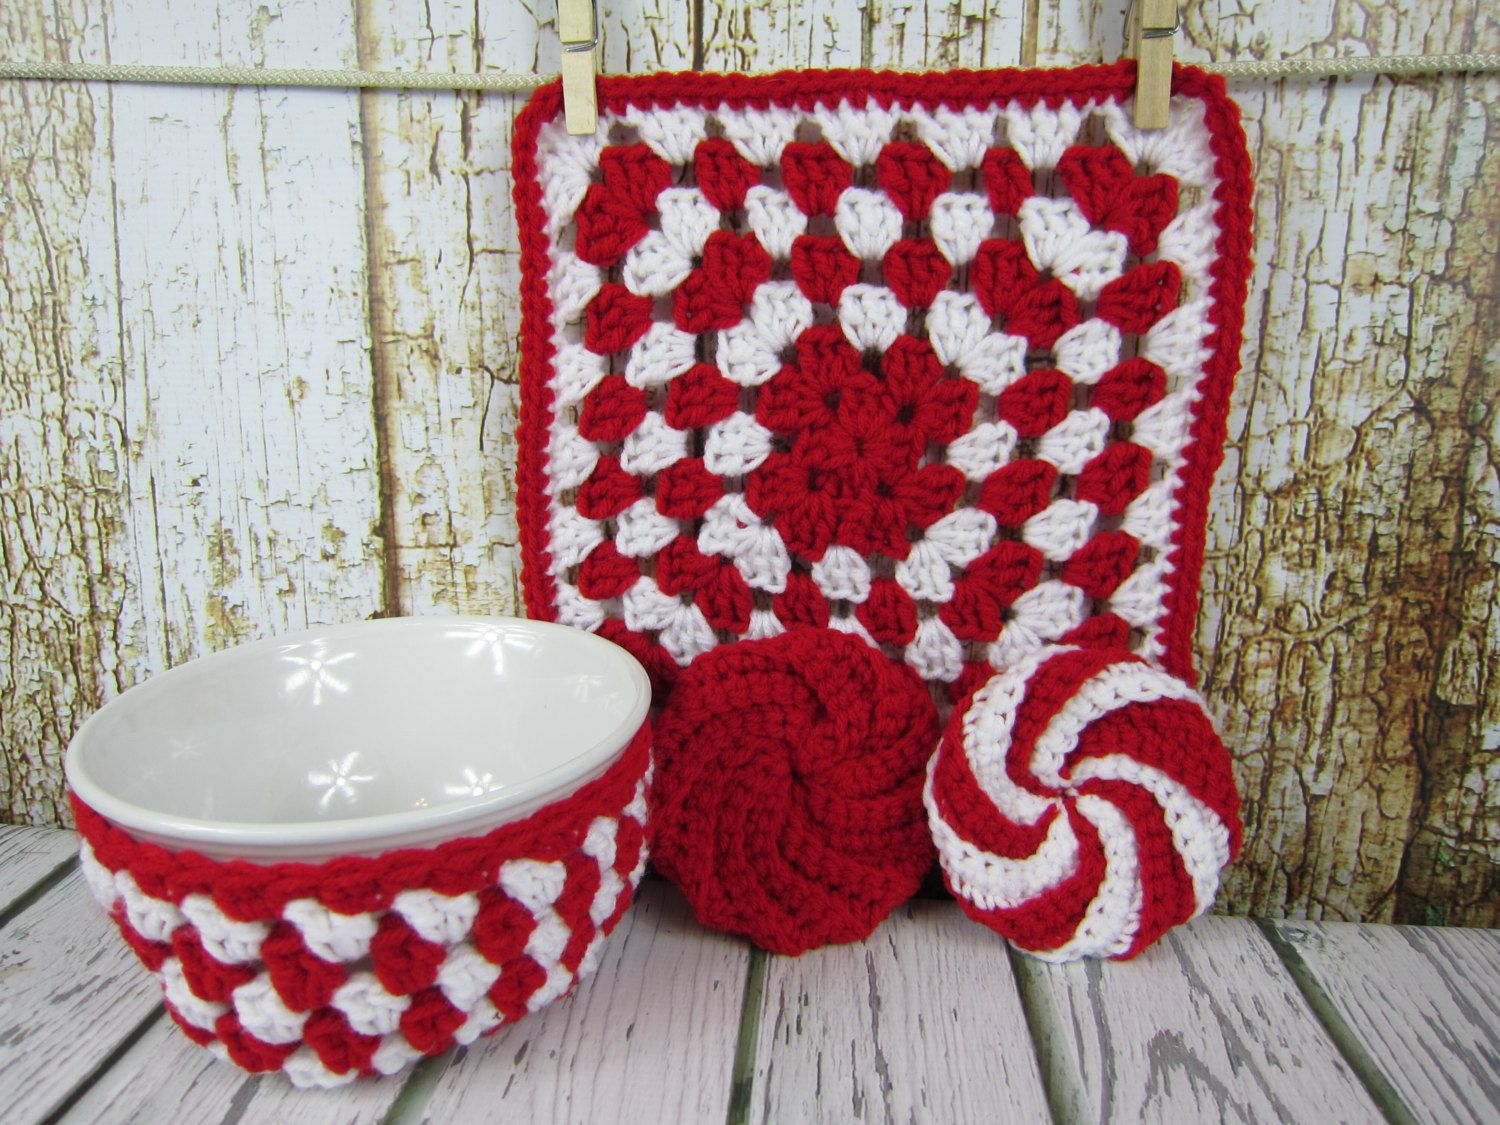 Bowl holder hot pad spiral scrubbie red and white hot pad bowl holder hot pad spiral scrubbie red and white hot pad crochet bankloansurffo Gallery